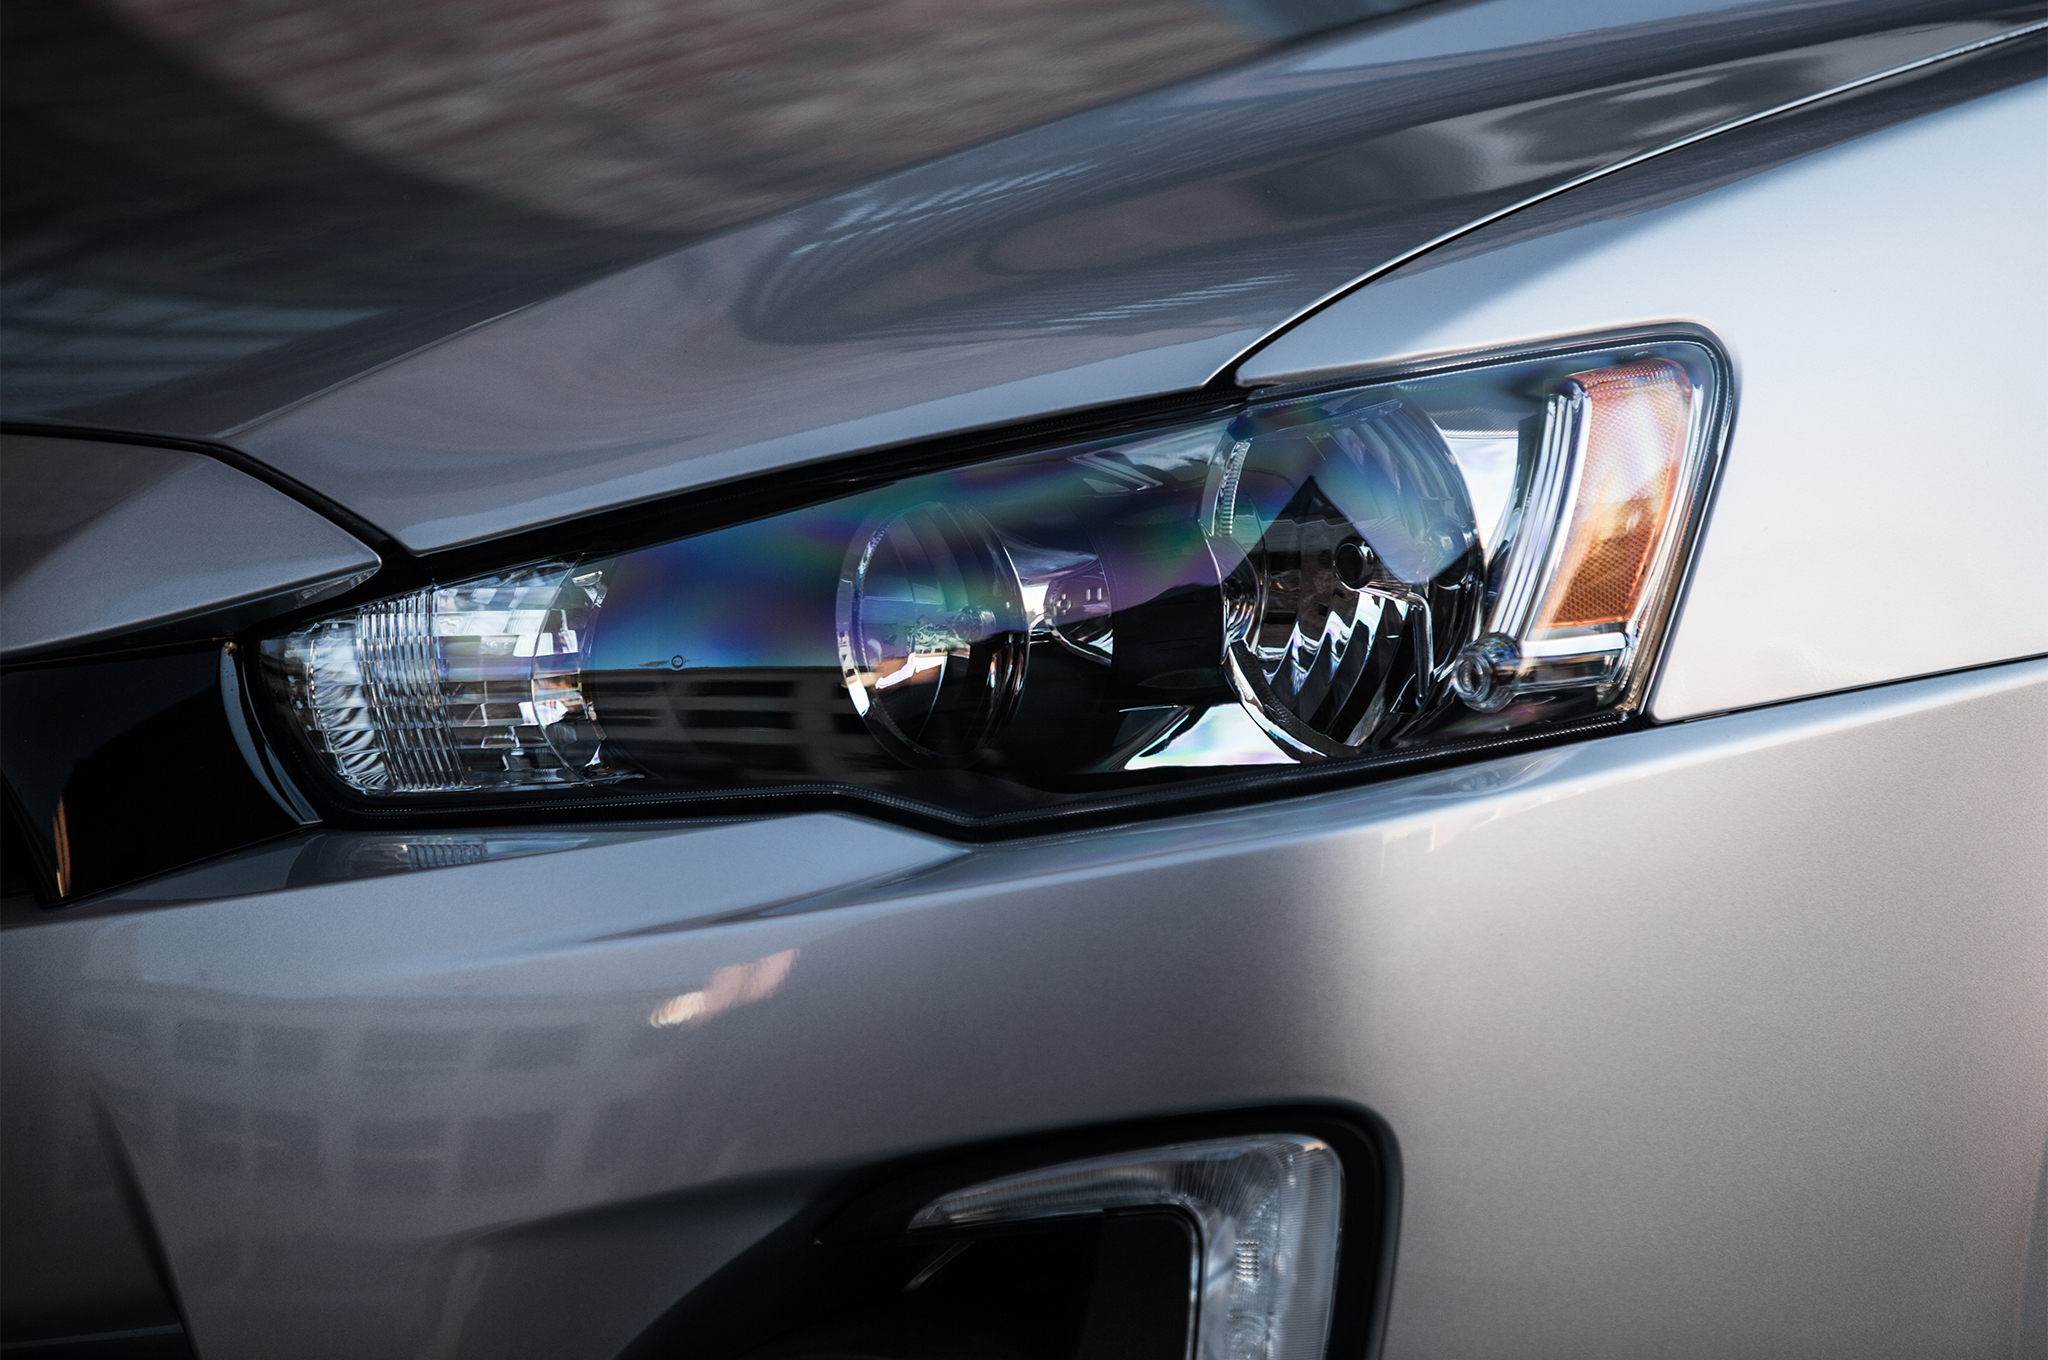 2017-Mitsubishi-Lancer-Limited-Edition-headlamp